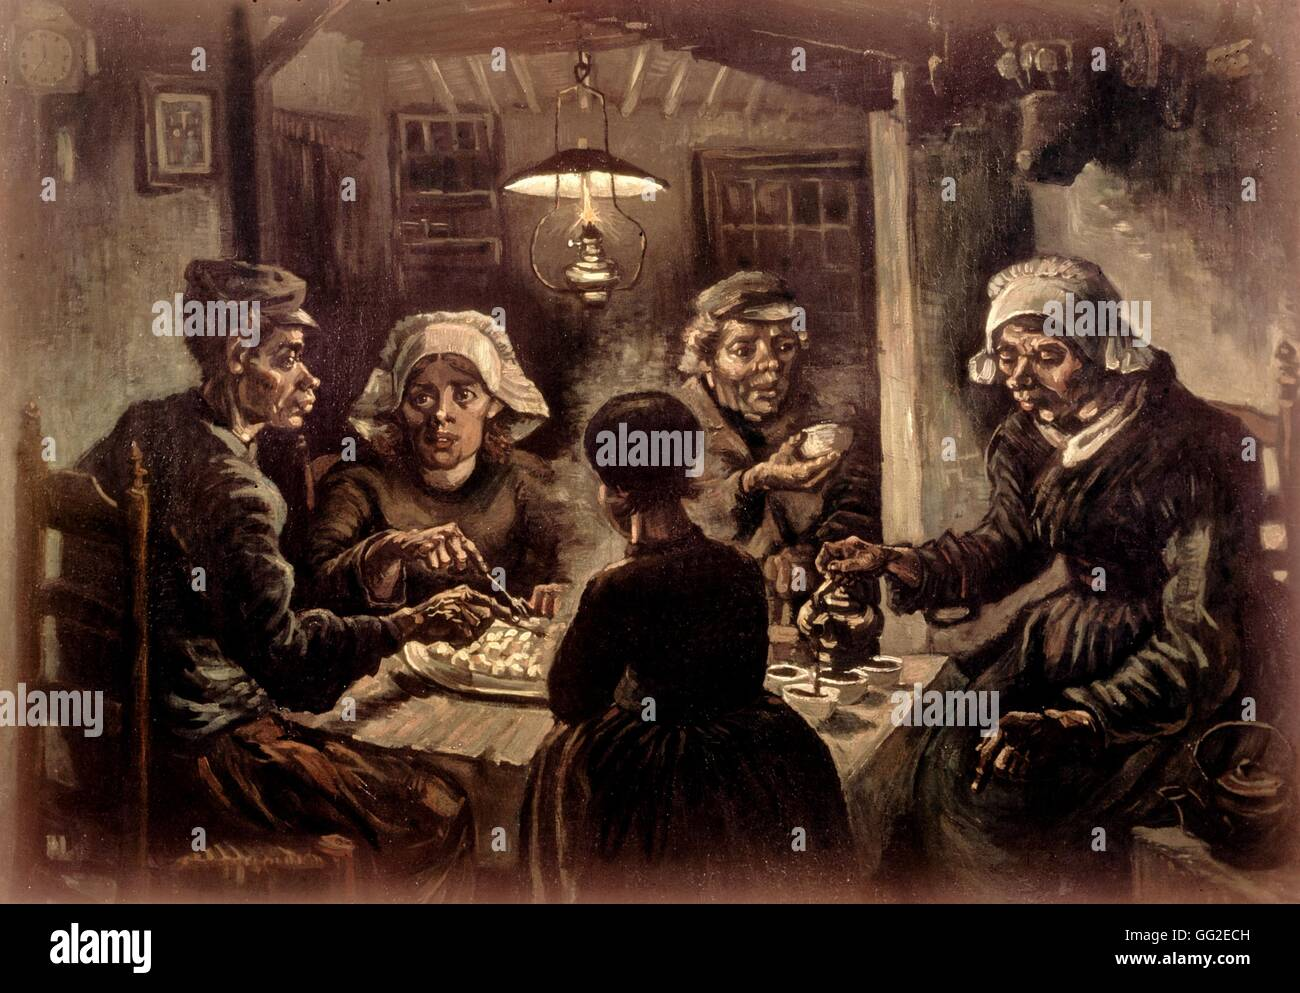 analysis of the potato eaters by Analysis of the potato eaters by vincent van gogh essay bartleby analysis of the potato eaters by vincent van gogh essay over them, on the center of the painting, .